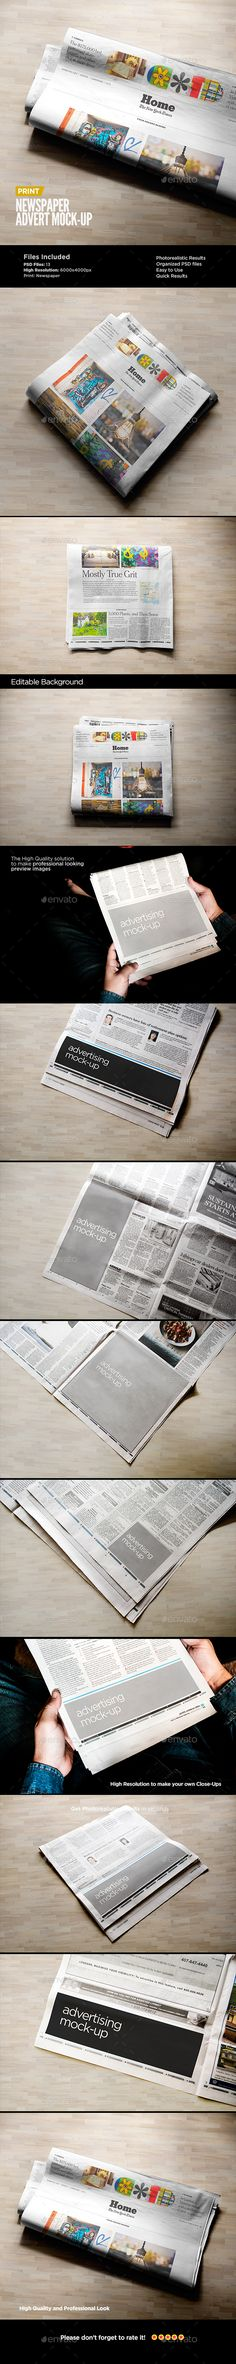 Newspaper Advert MockUp — Photoshop PSD #smart object #psd • Available here → https://graphicriver.net/item/newspaper-advert-mockup/14044517?ref=pxcr